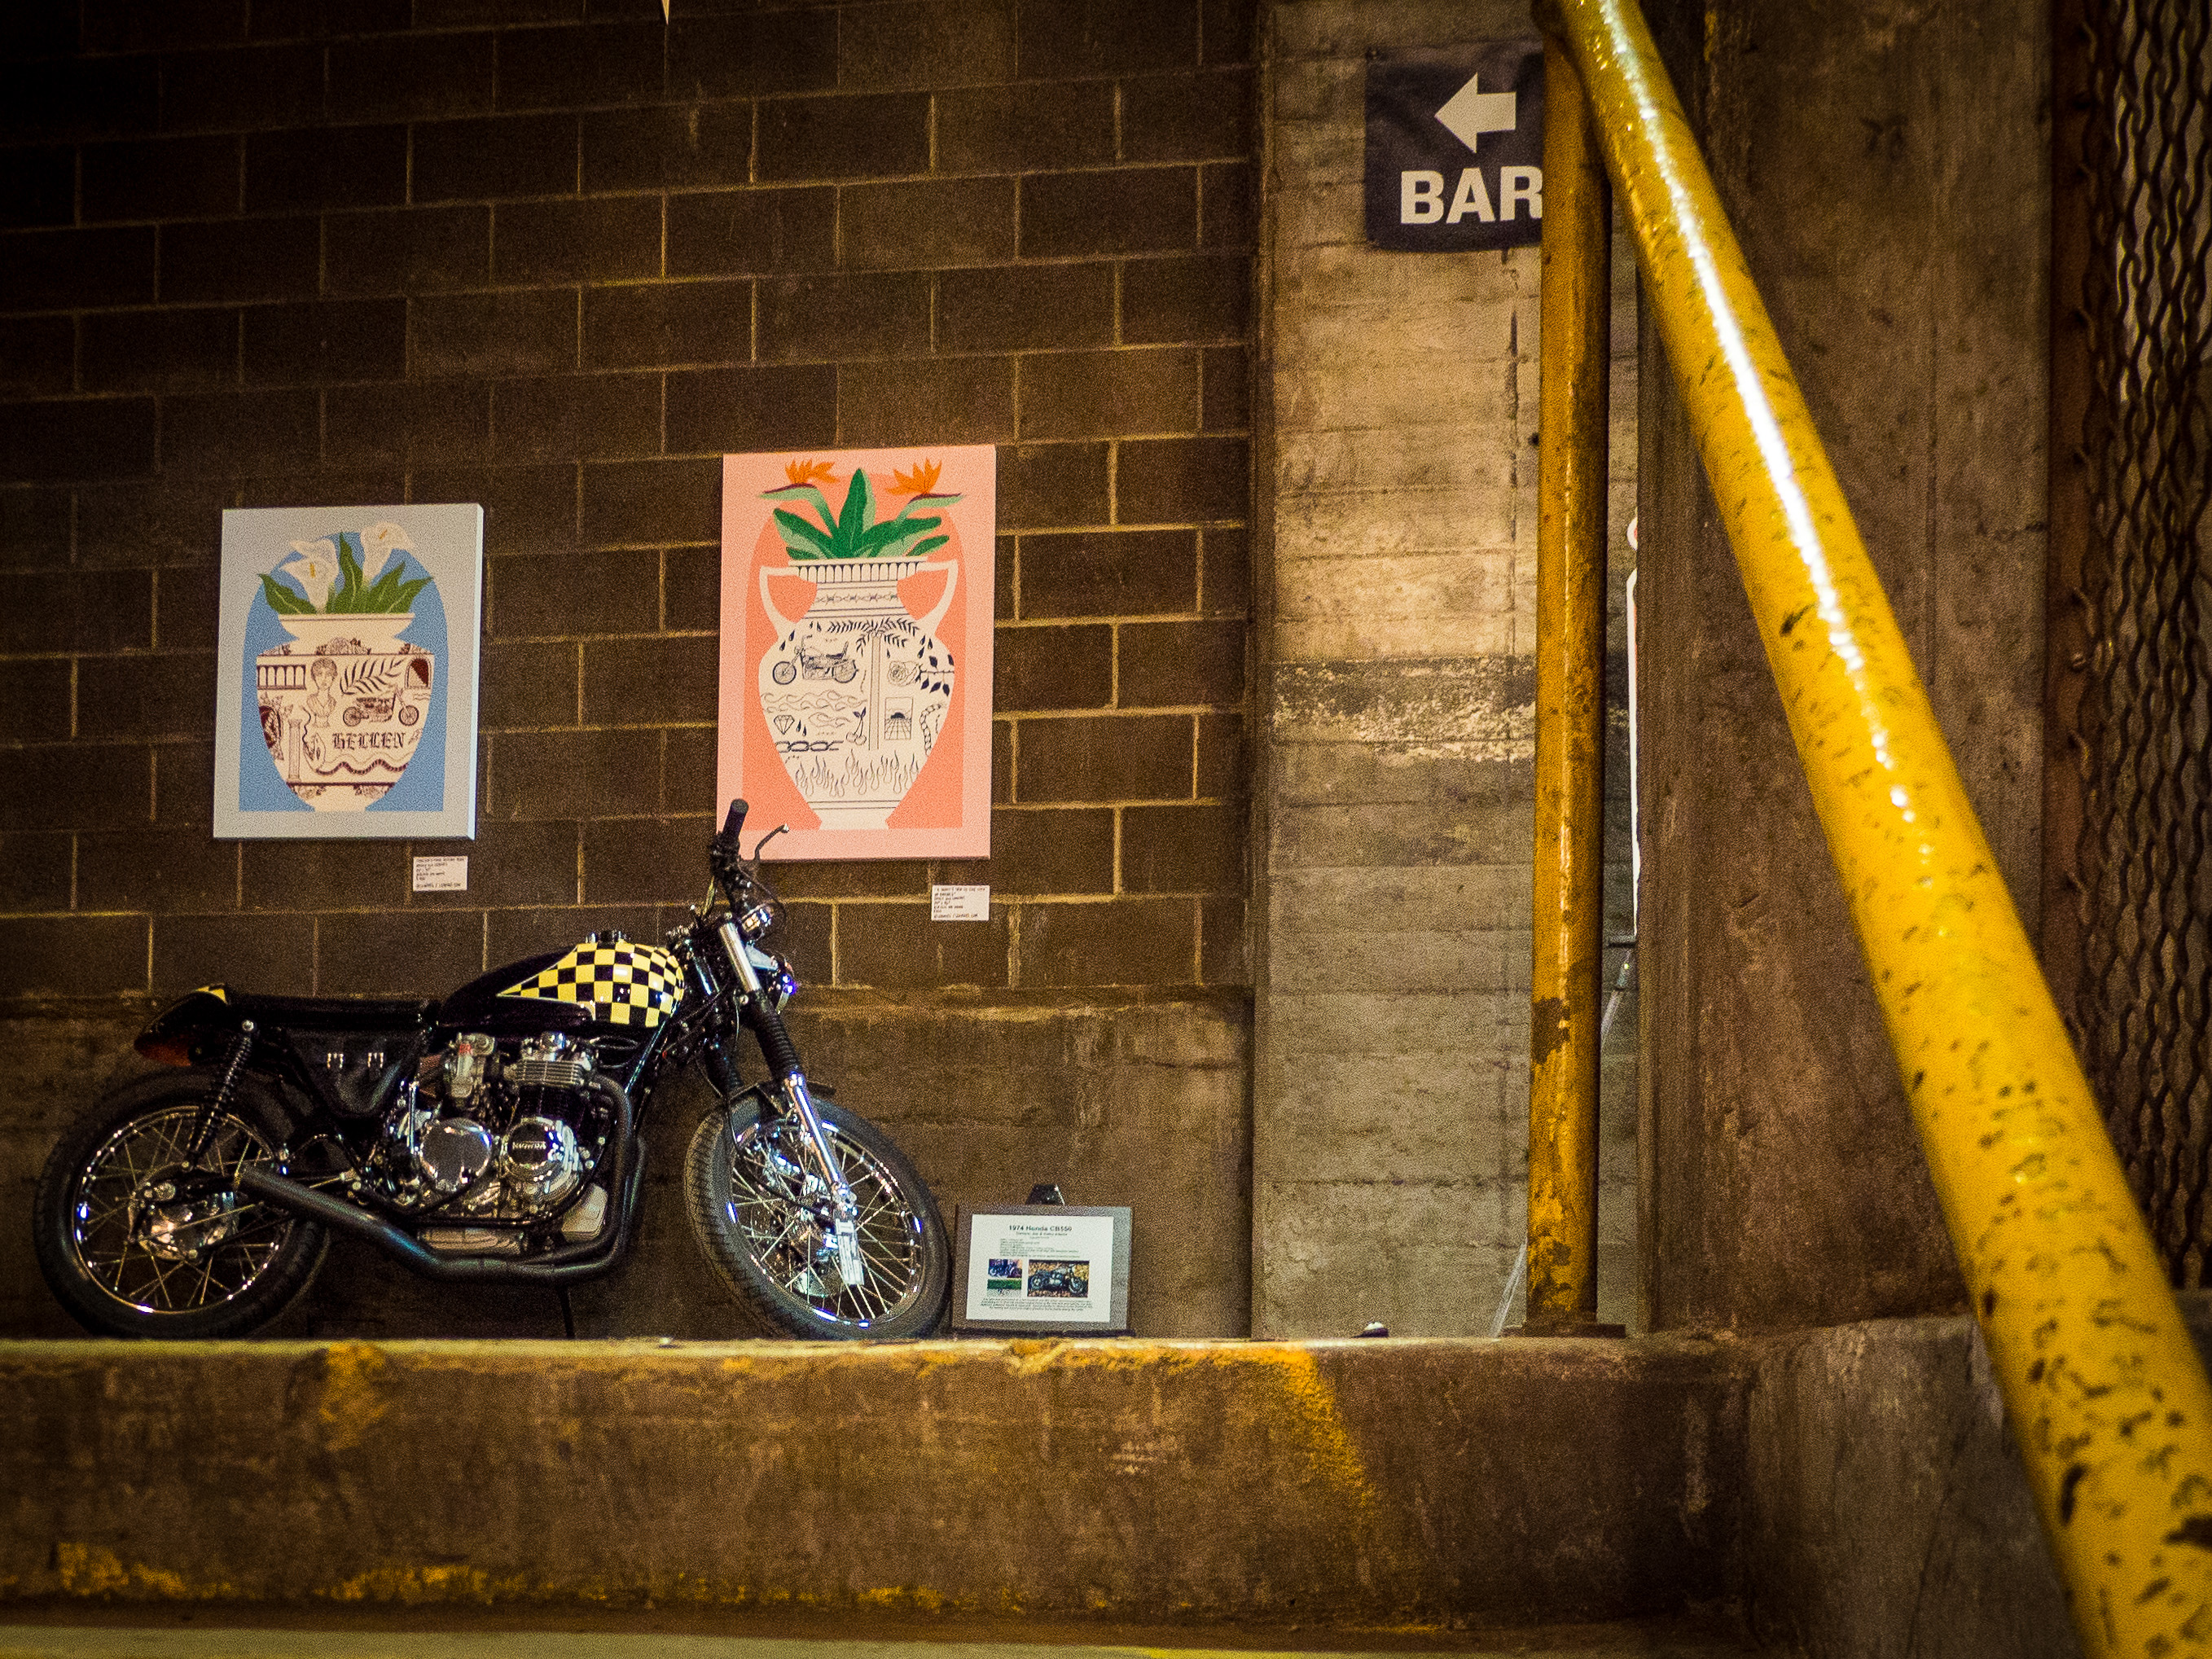 This 1974 Honda CB550 was bought as a non-running basketcase for $250 and given new life as a badass.